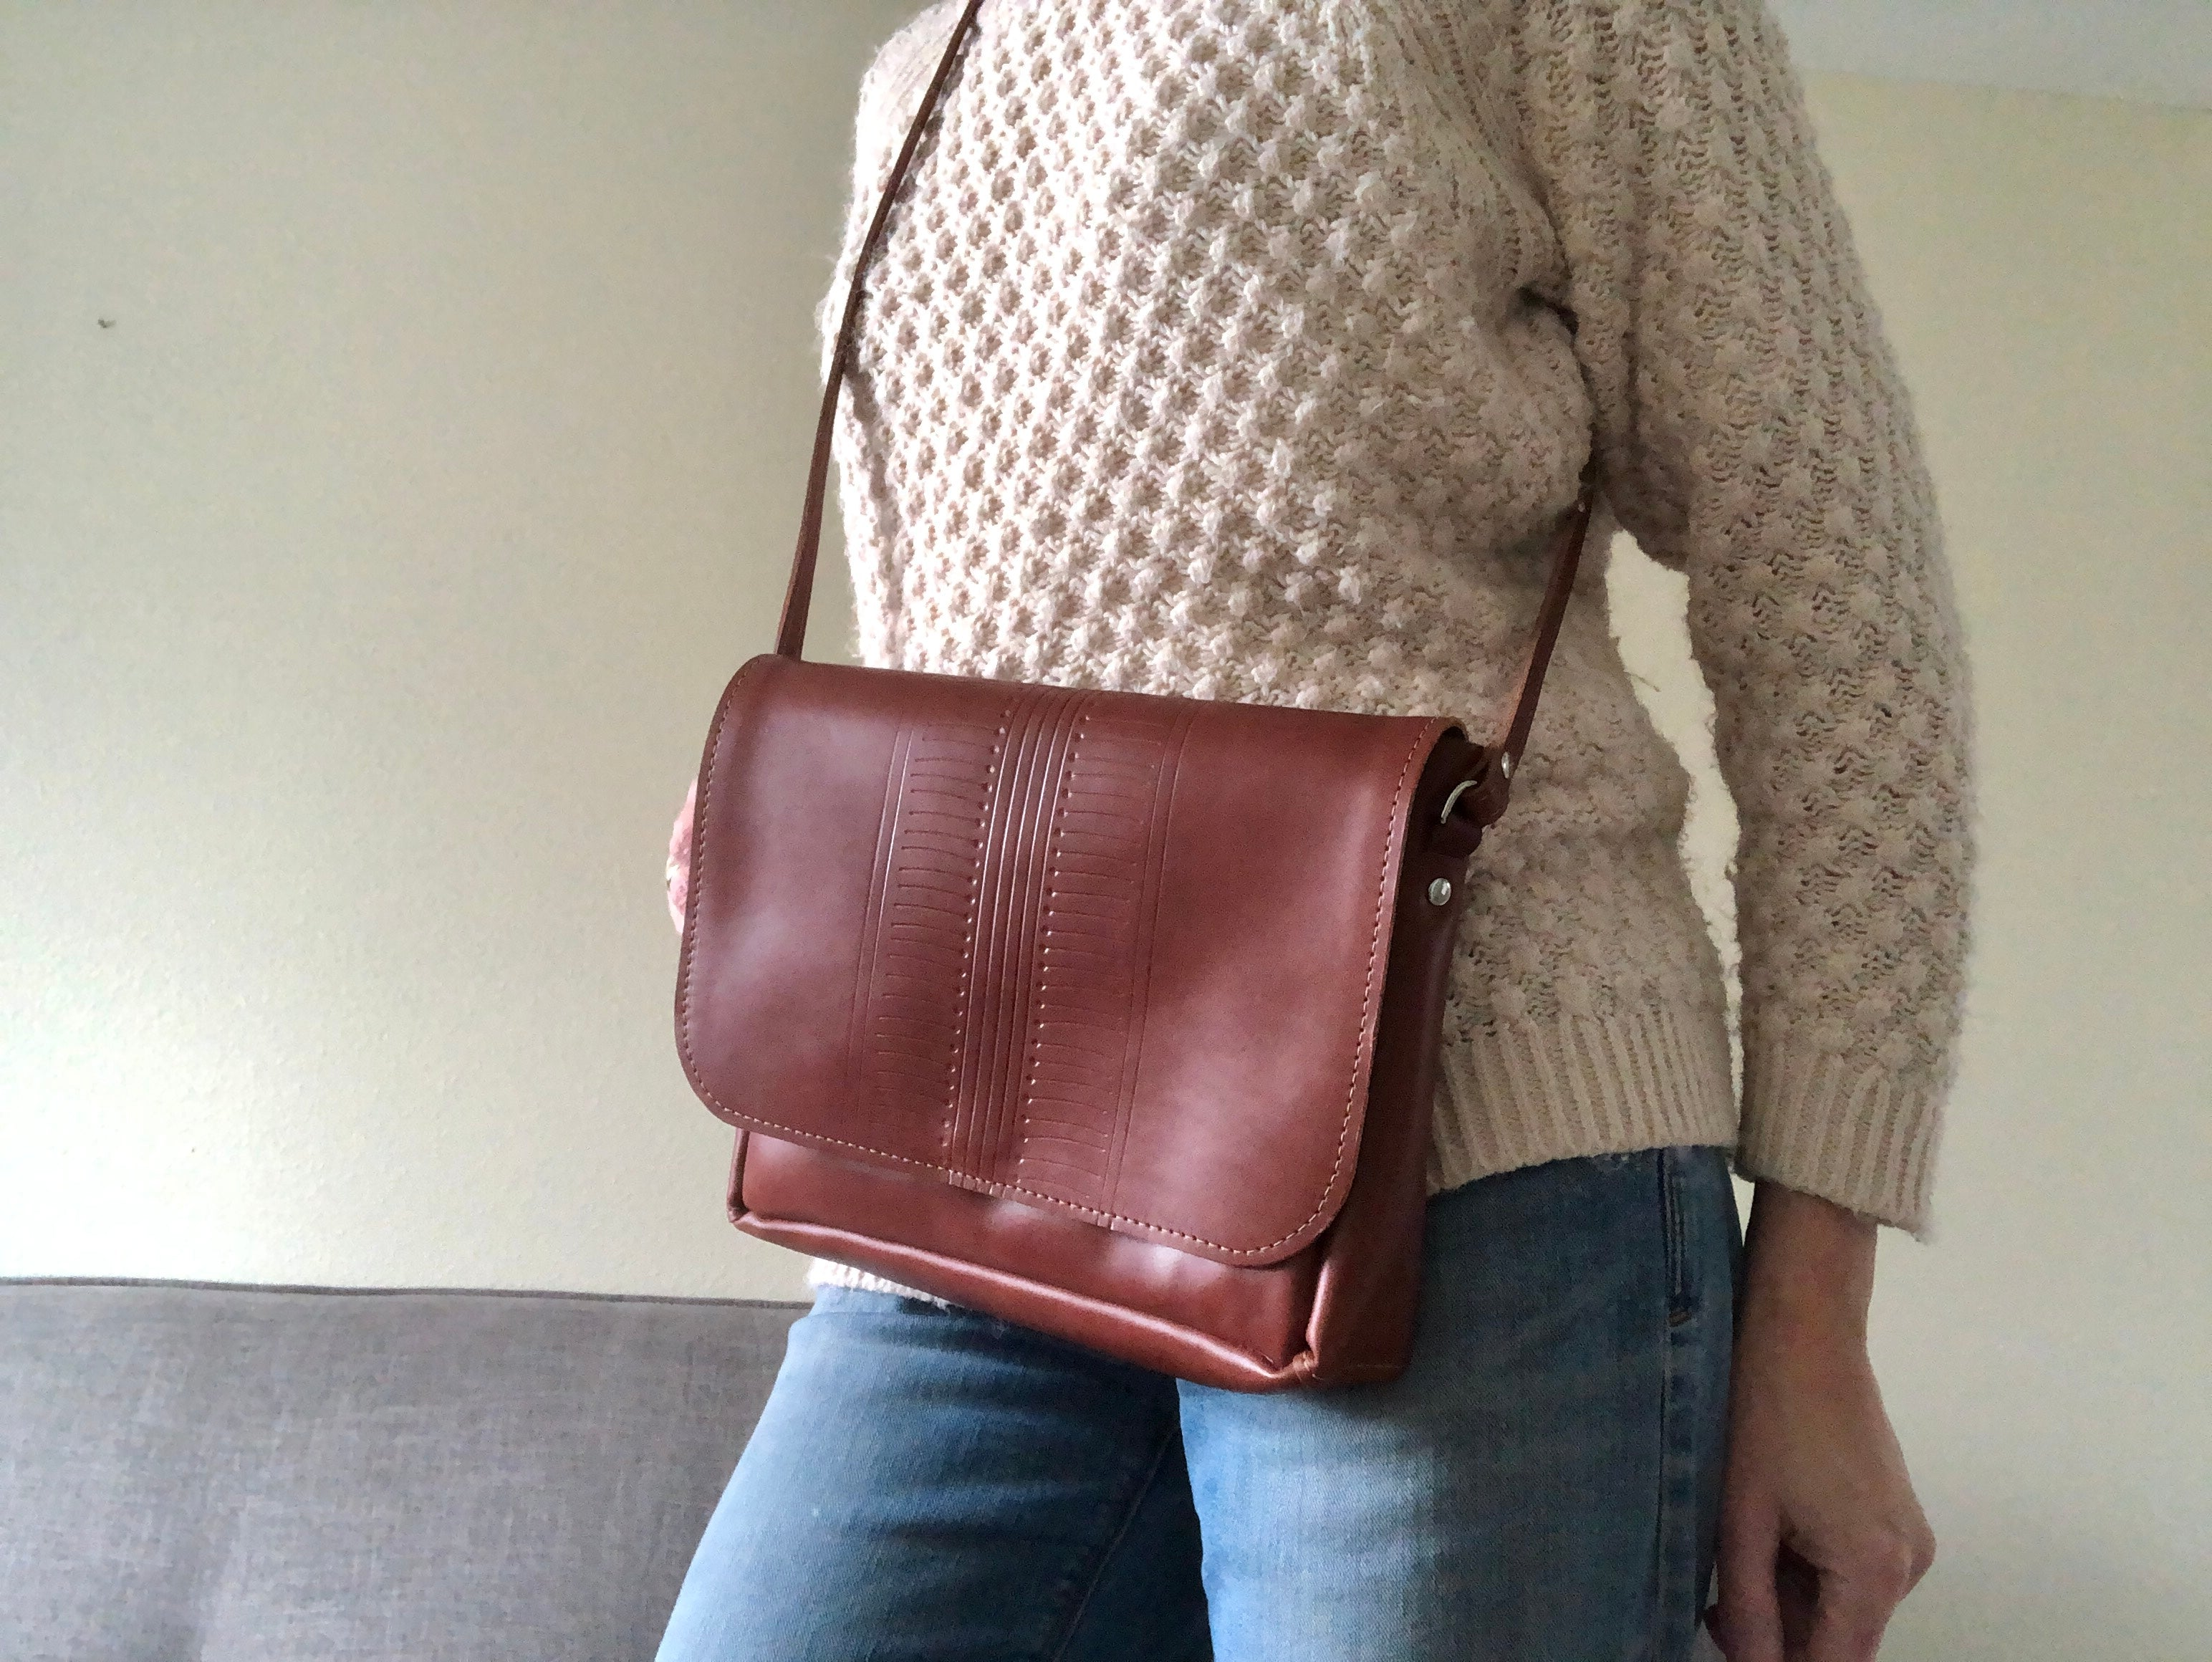 Brown Crossbody Bag With Patterned Detail / Leather Crossbody Purse